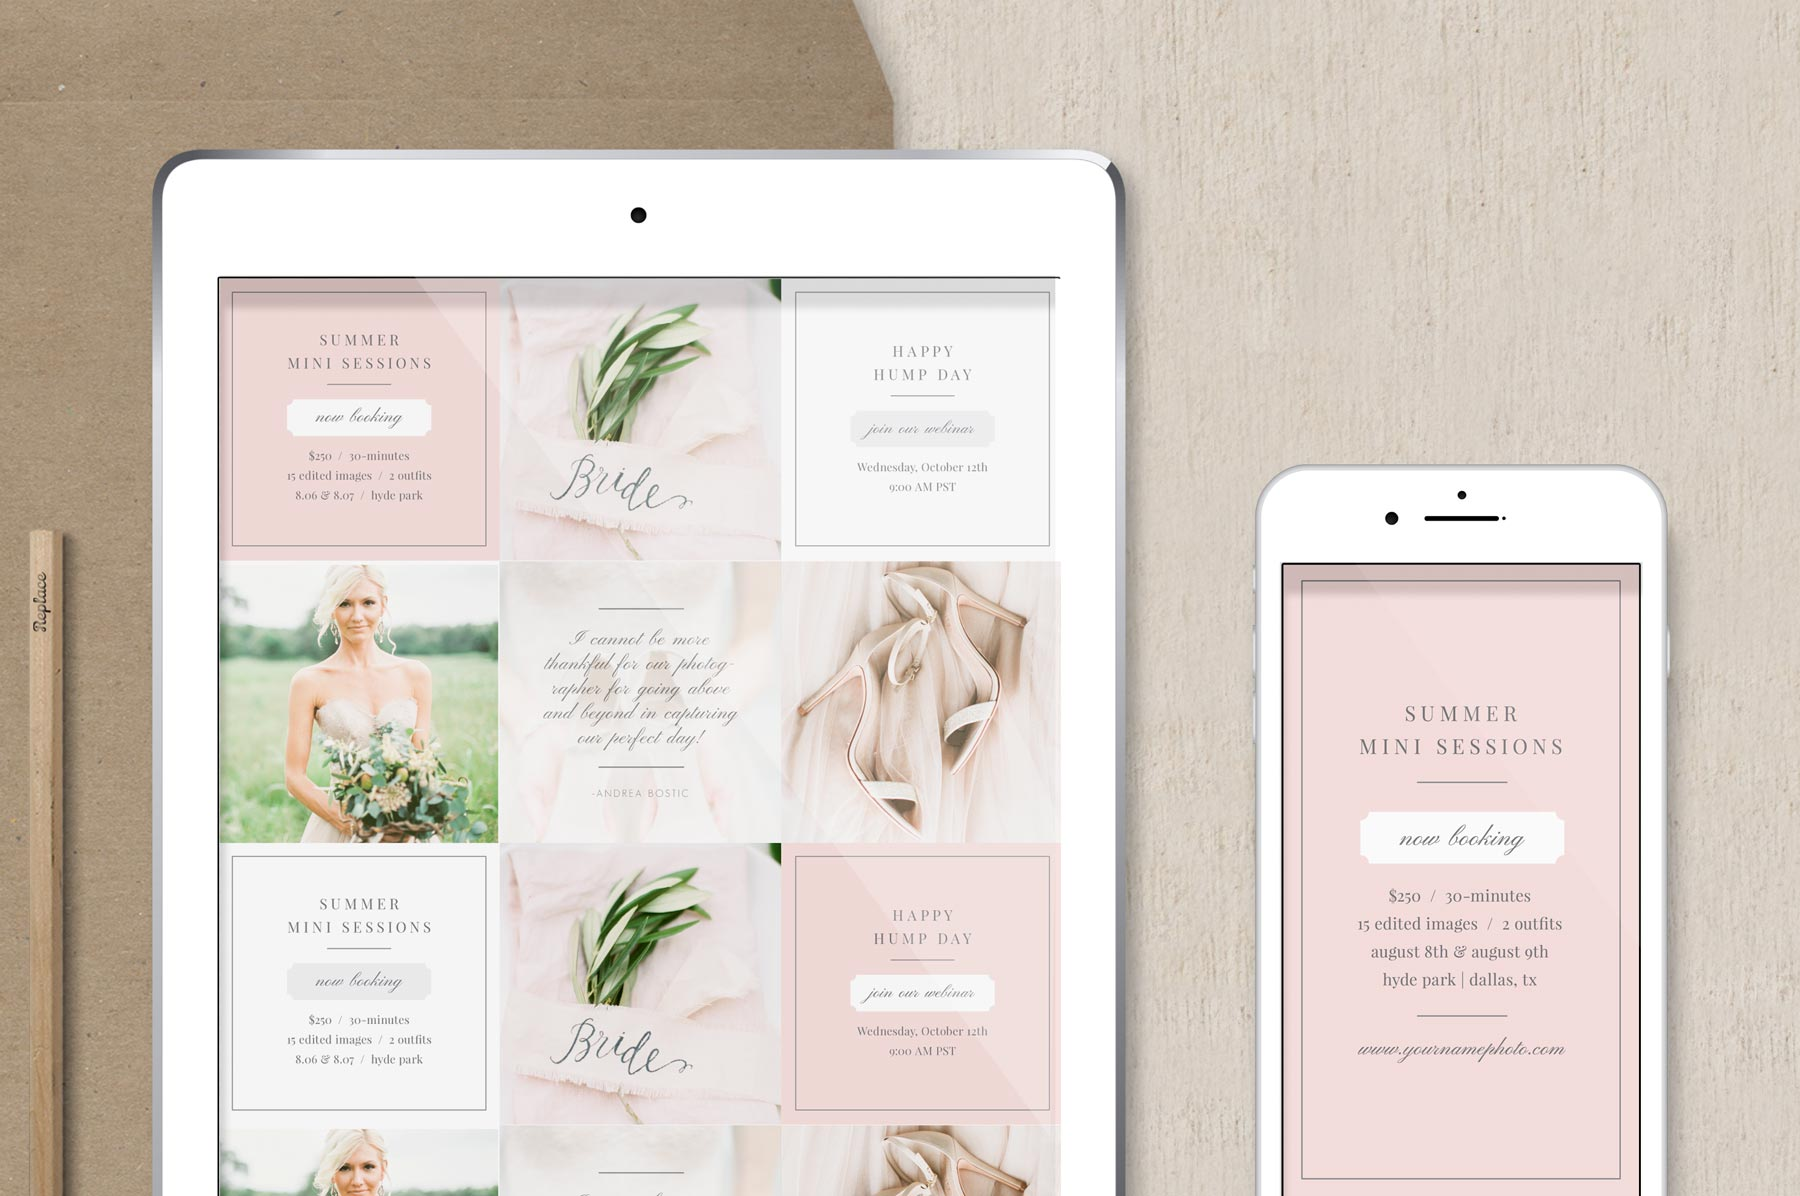 free instagram stories template for photographers & wedding planners | social media templates for free